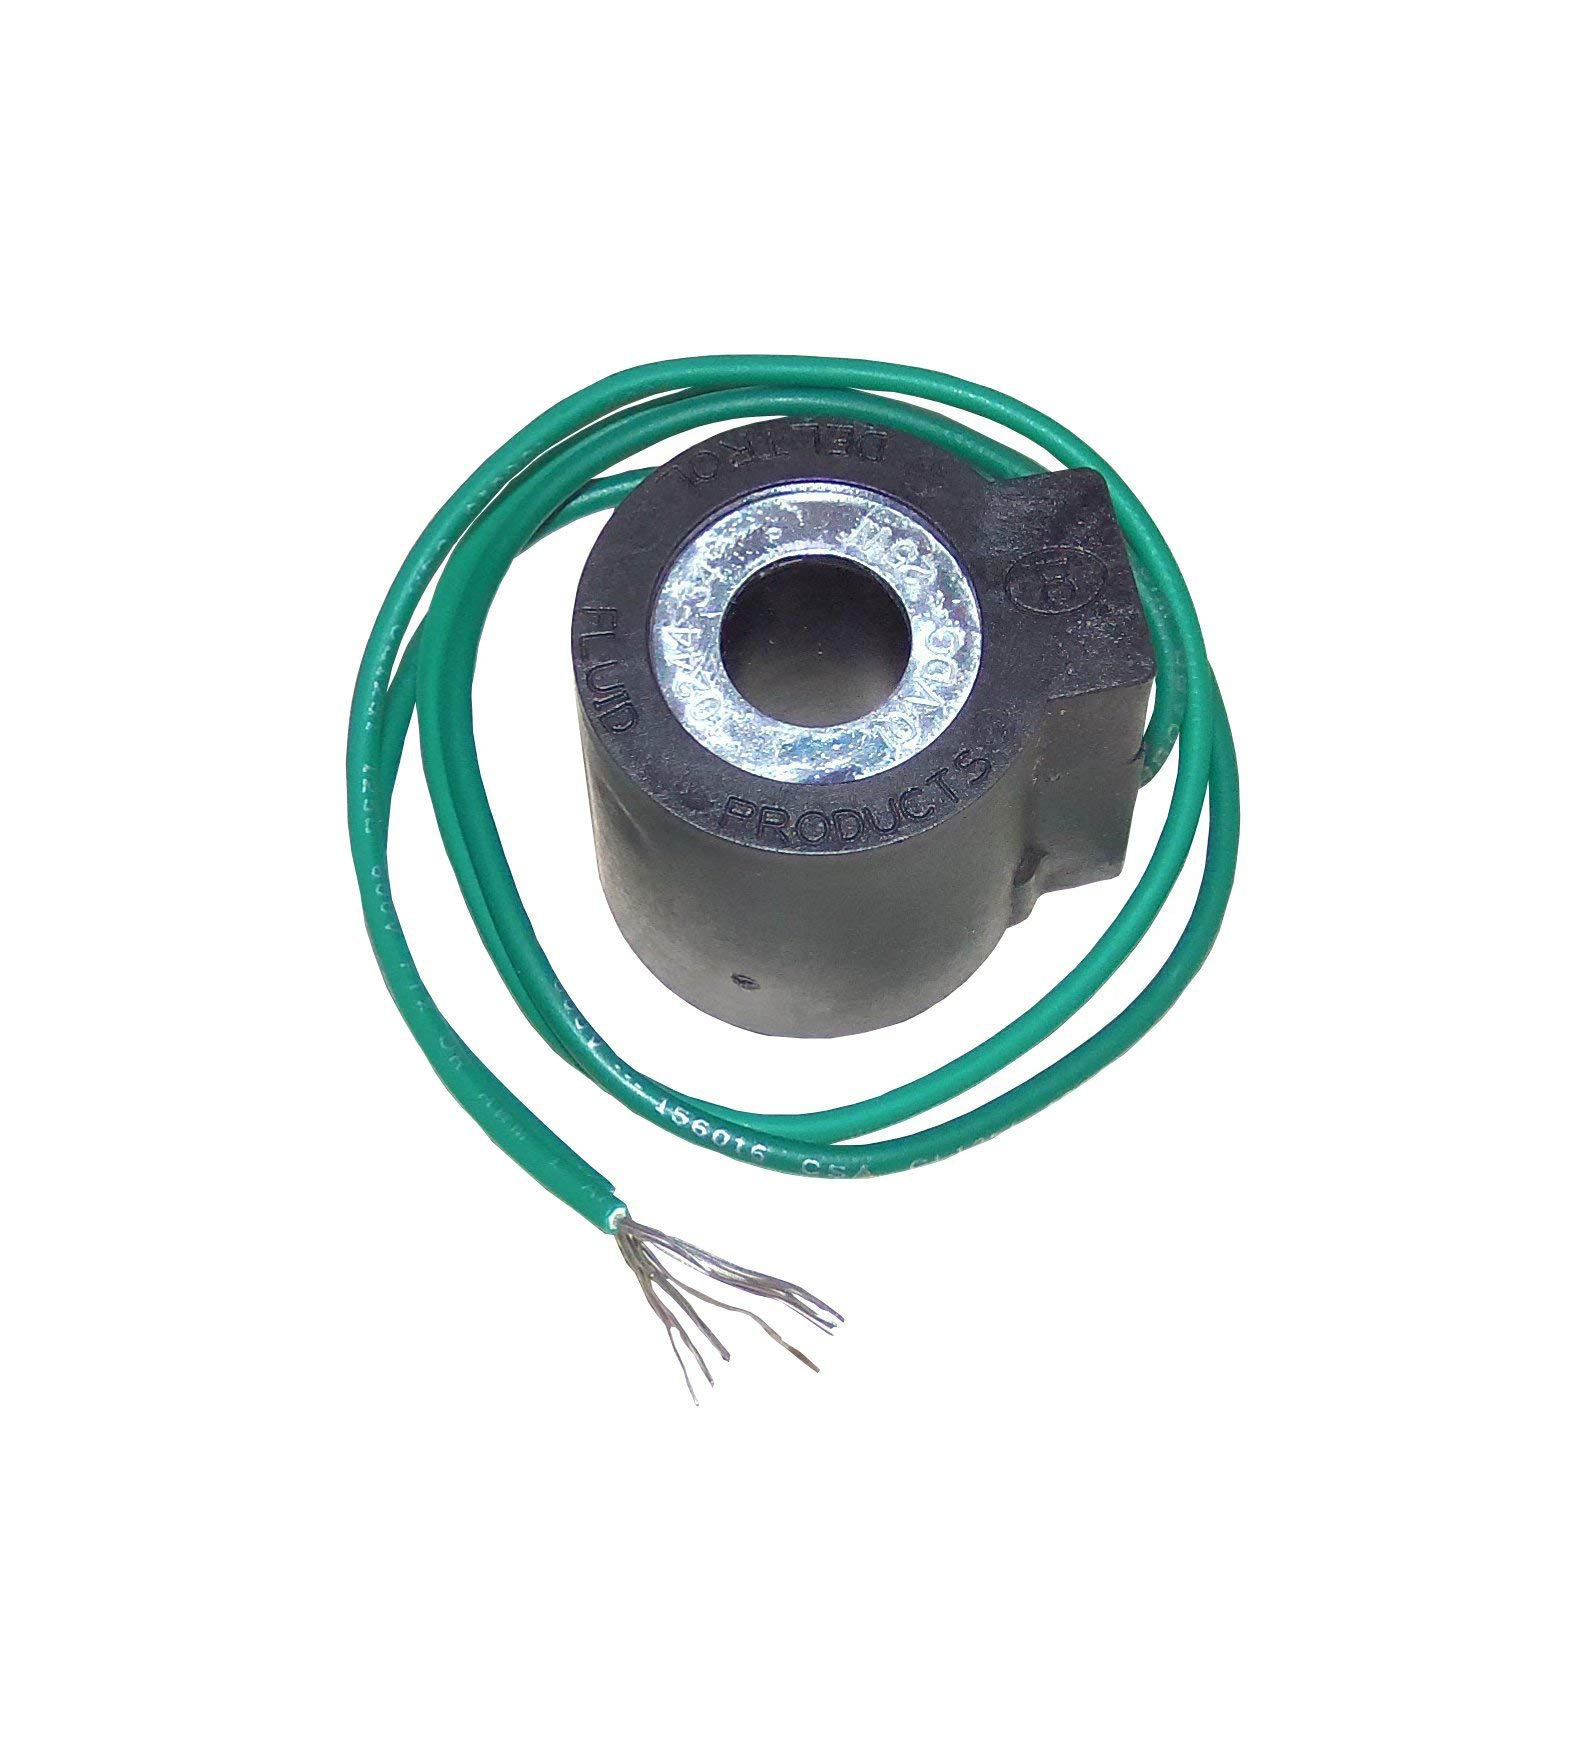 Deltrol 10244-34 10VDC Solenoid Coil 25W with Dual Lead Wires